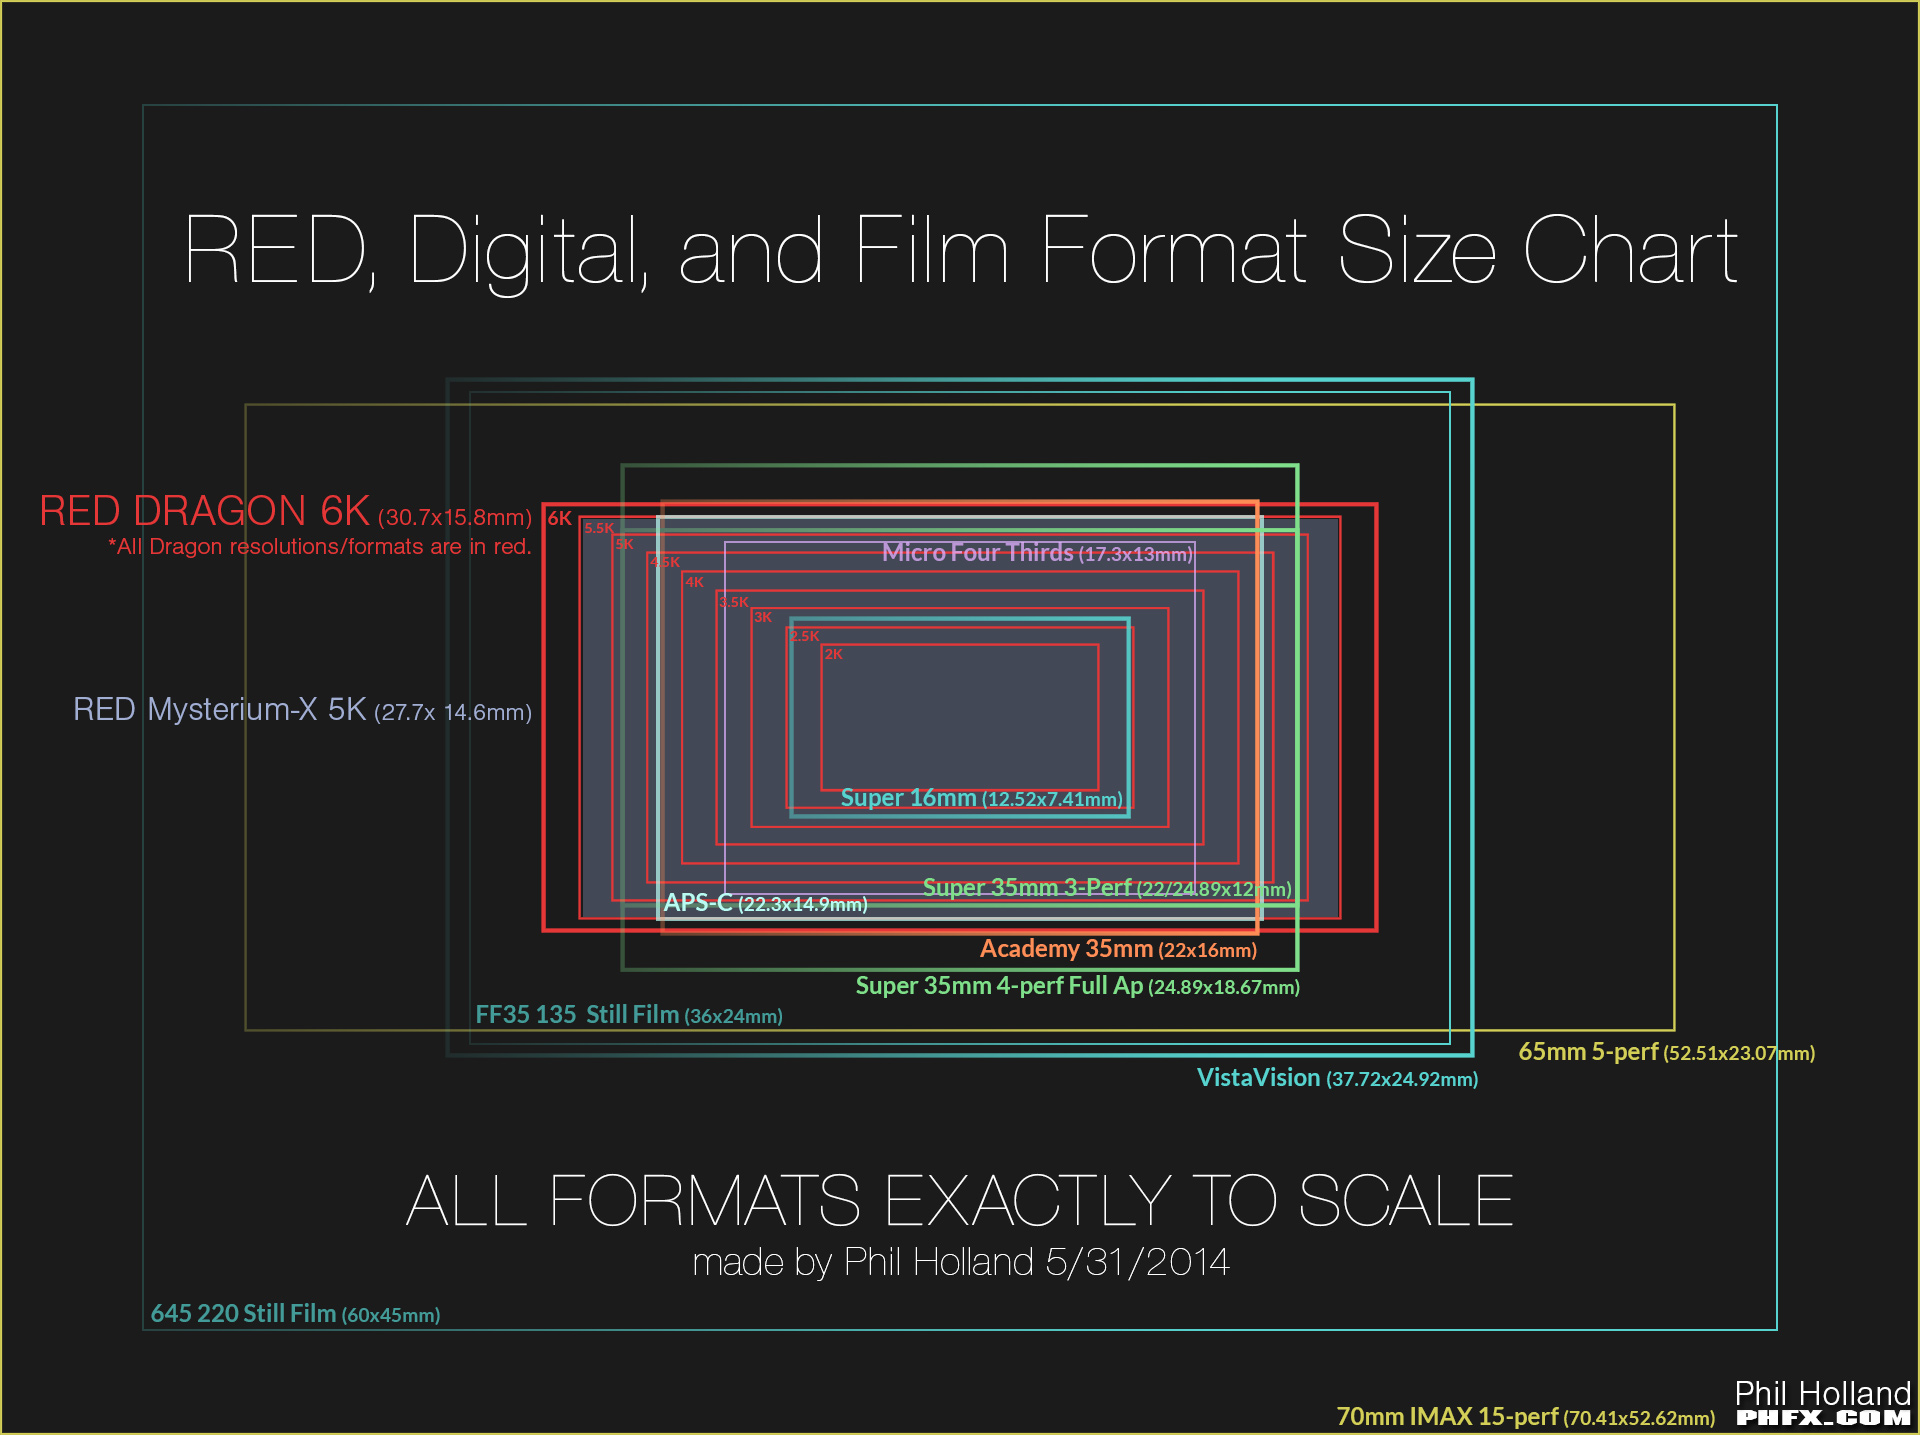 Red digital and film format size chart by phil holland vfx red digital and film format size chart by phil holland jeuxipadfo Images